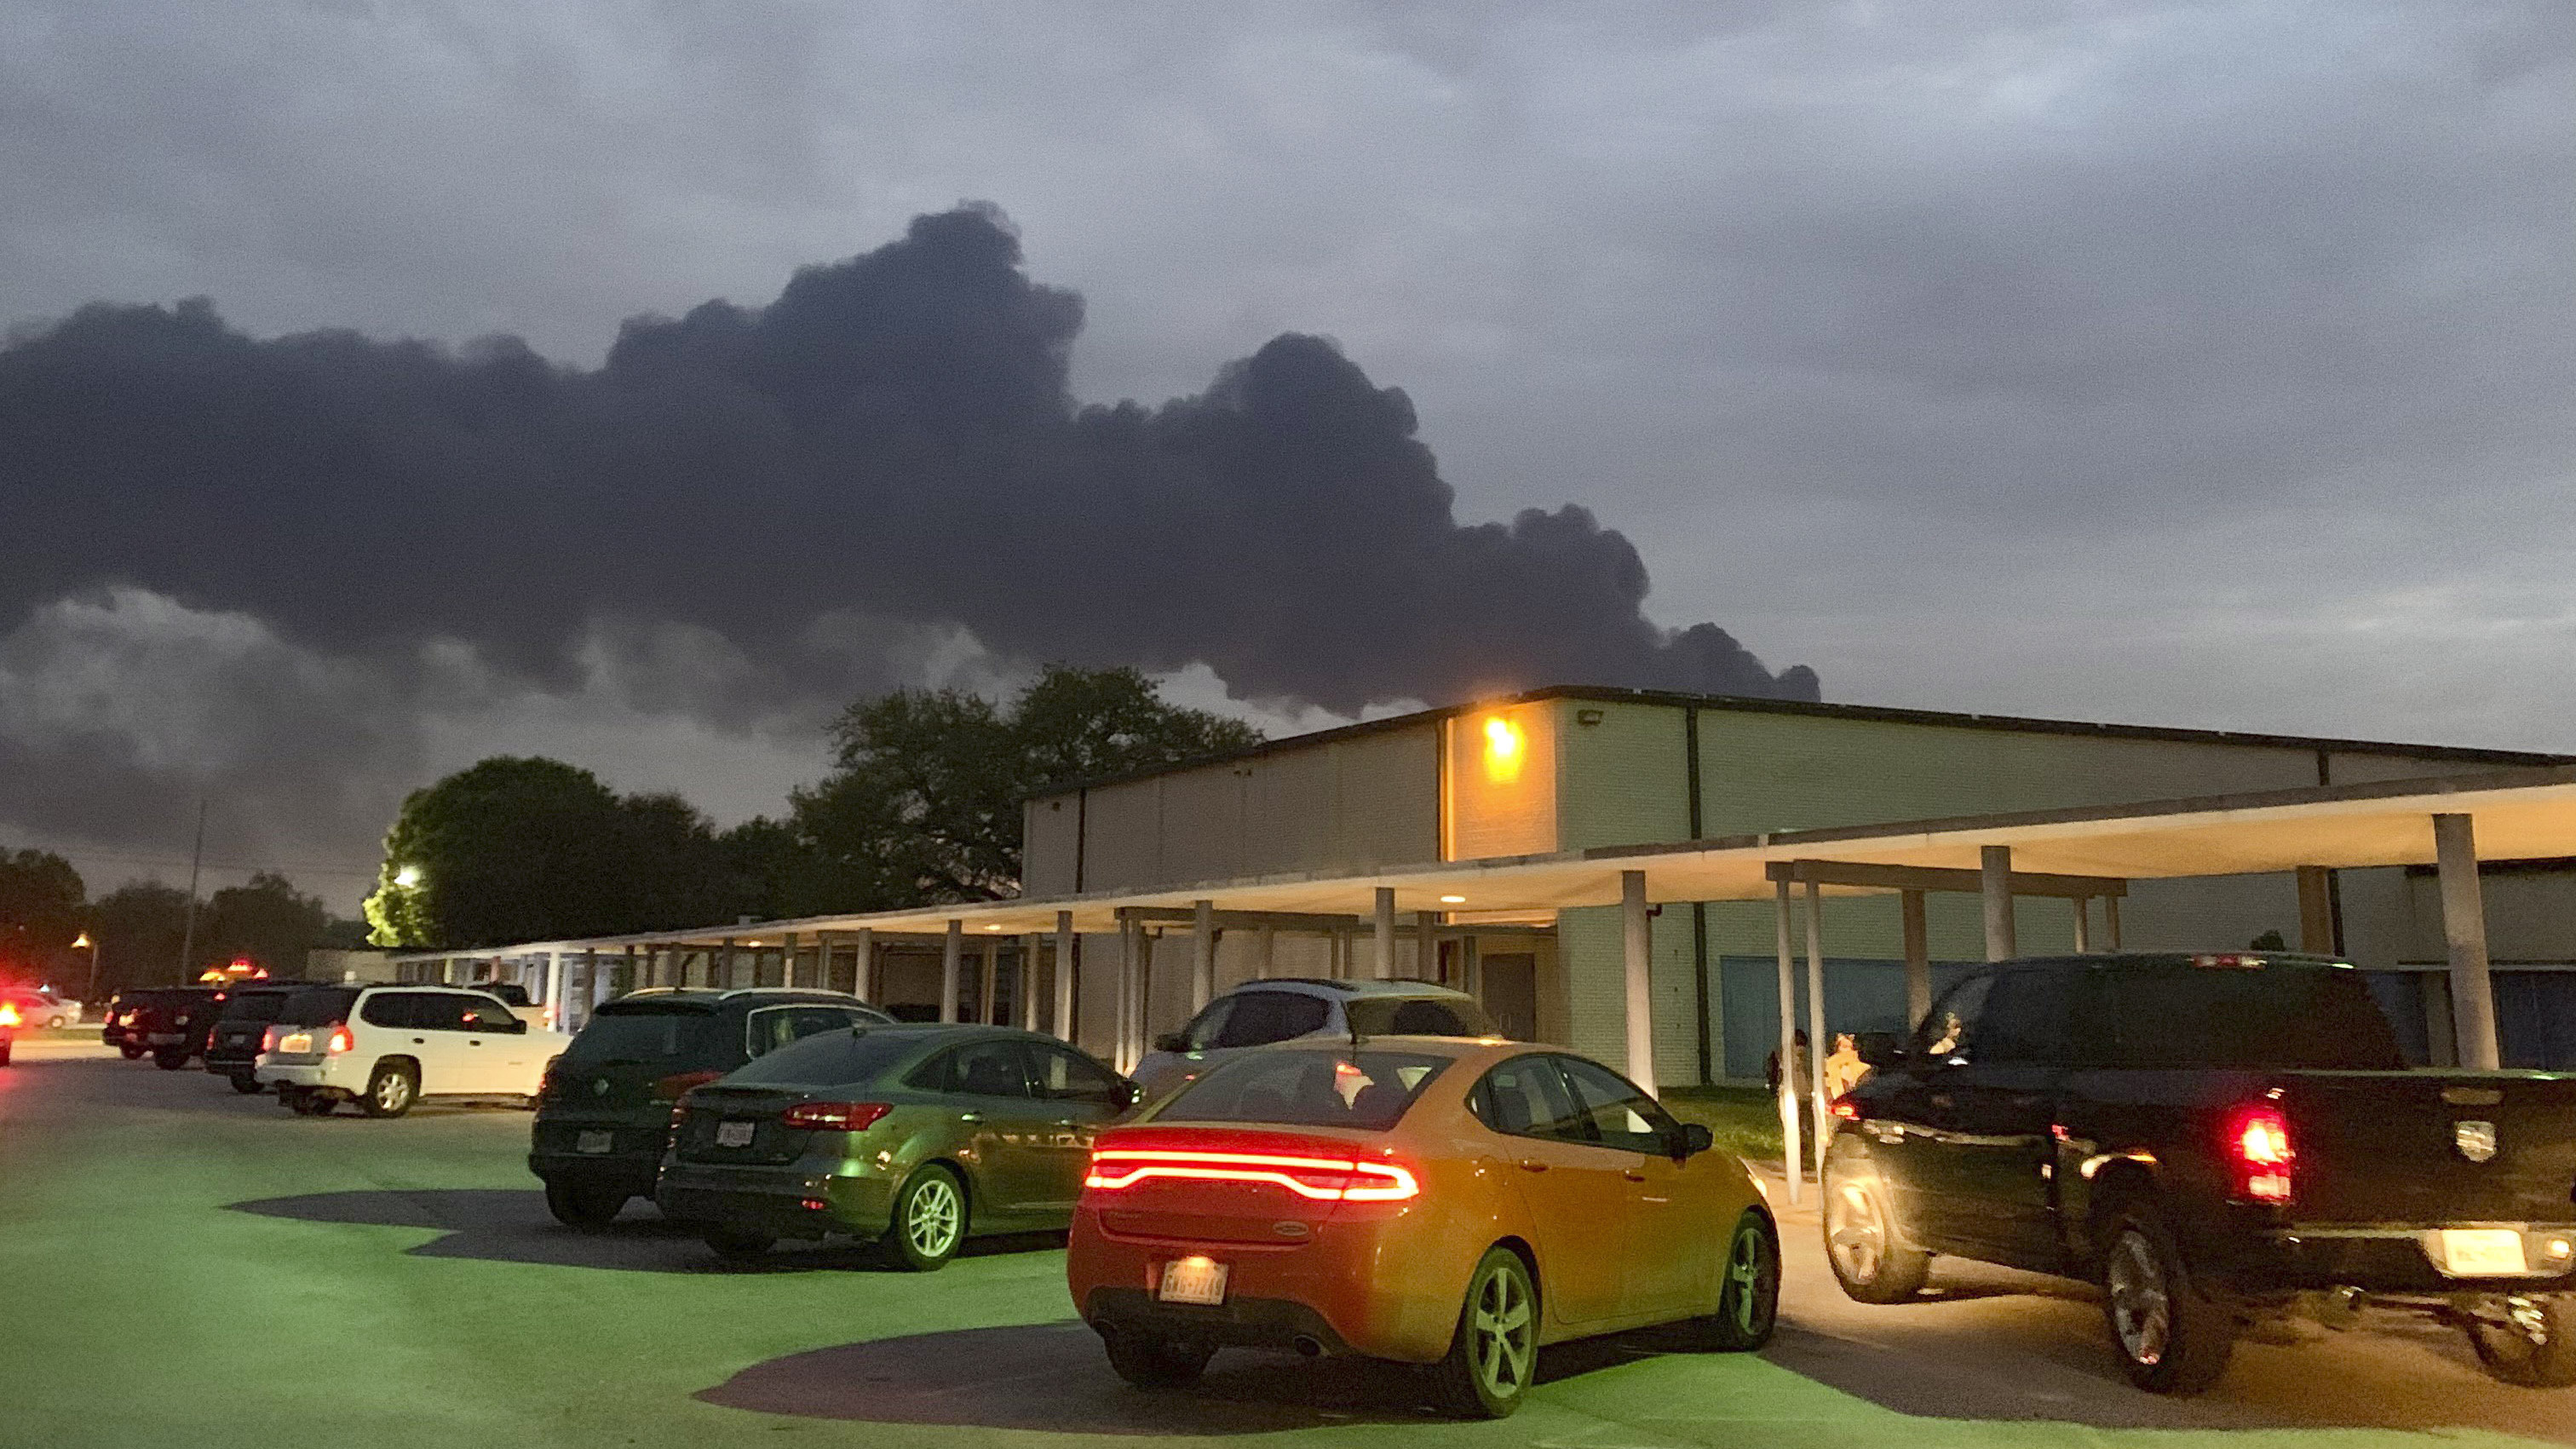 Petrochemical Fire Reignites At Houston-Area Fuel Storage Facility